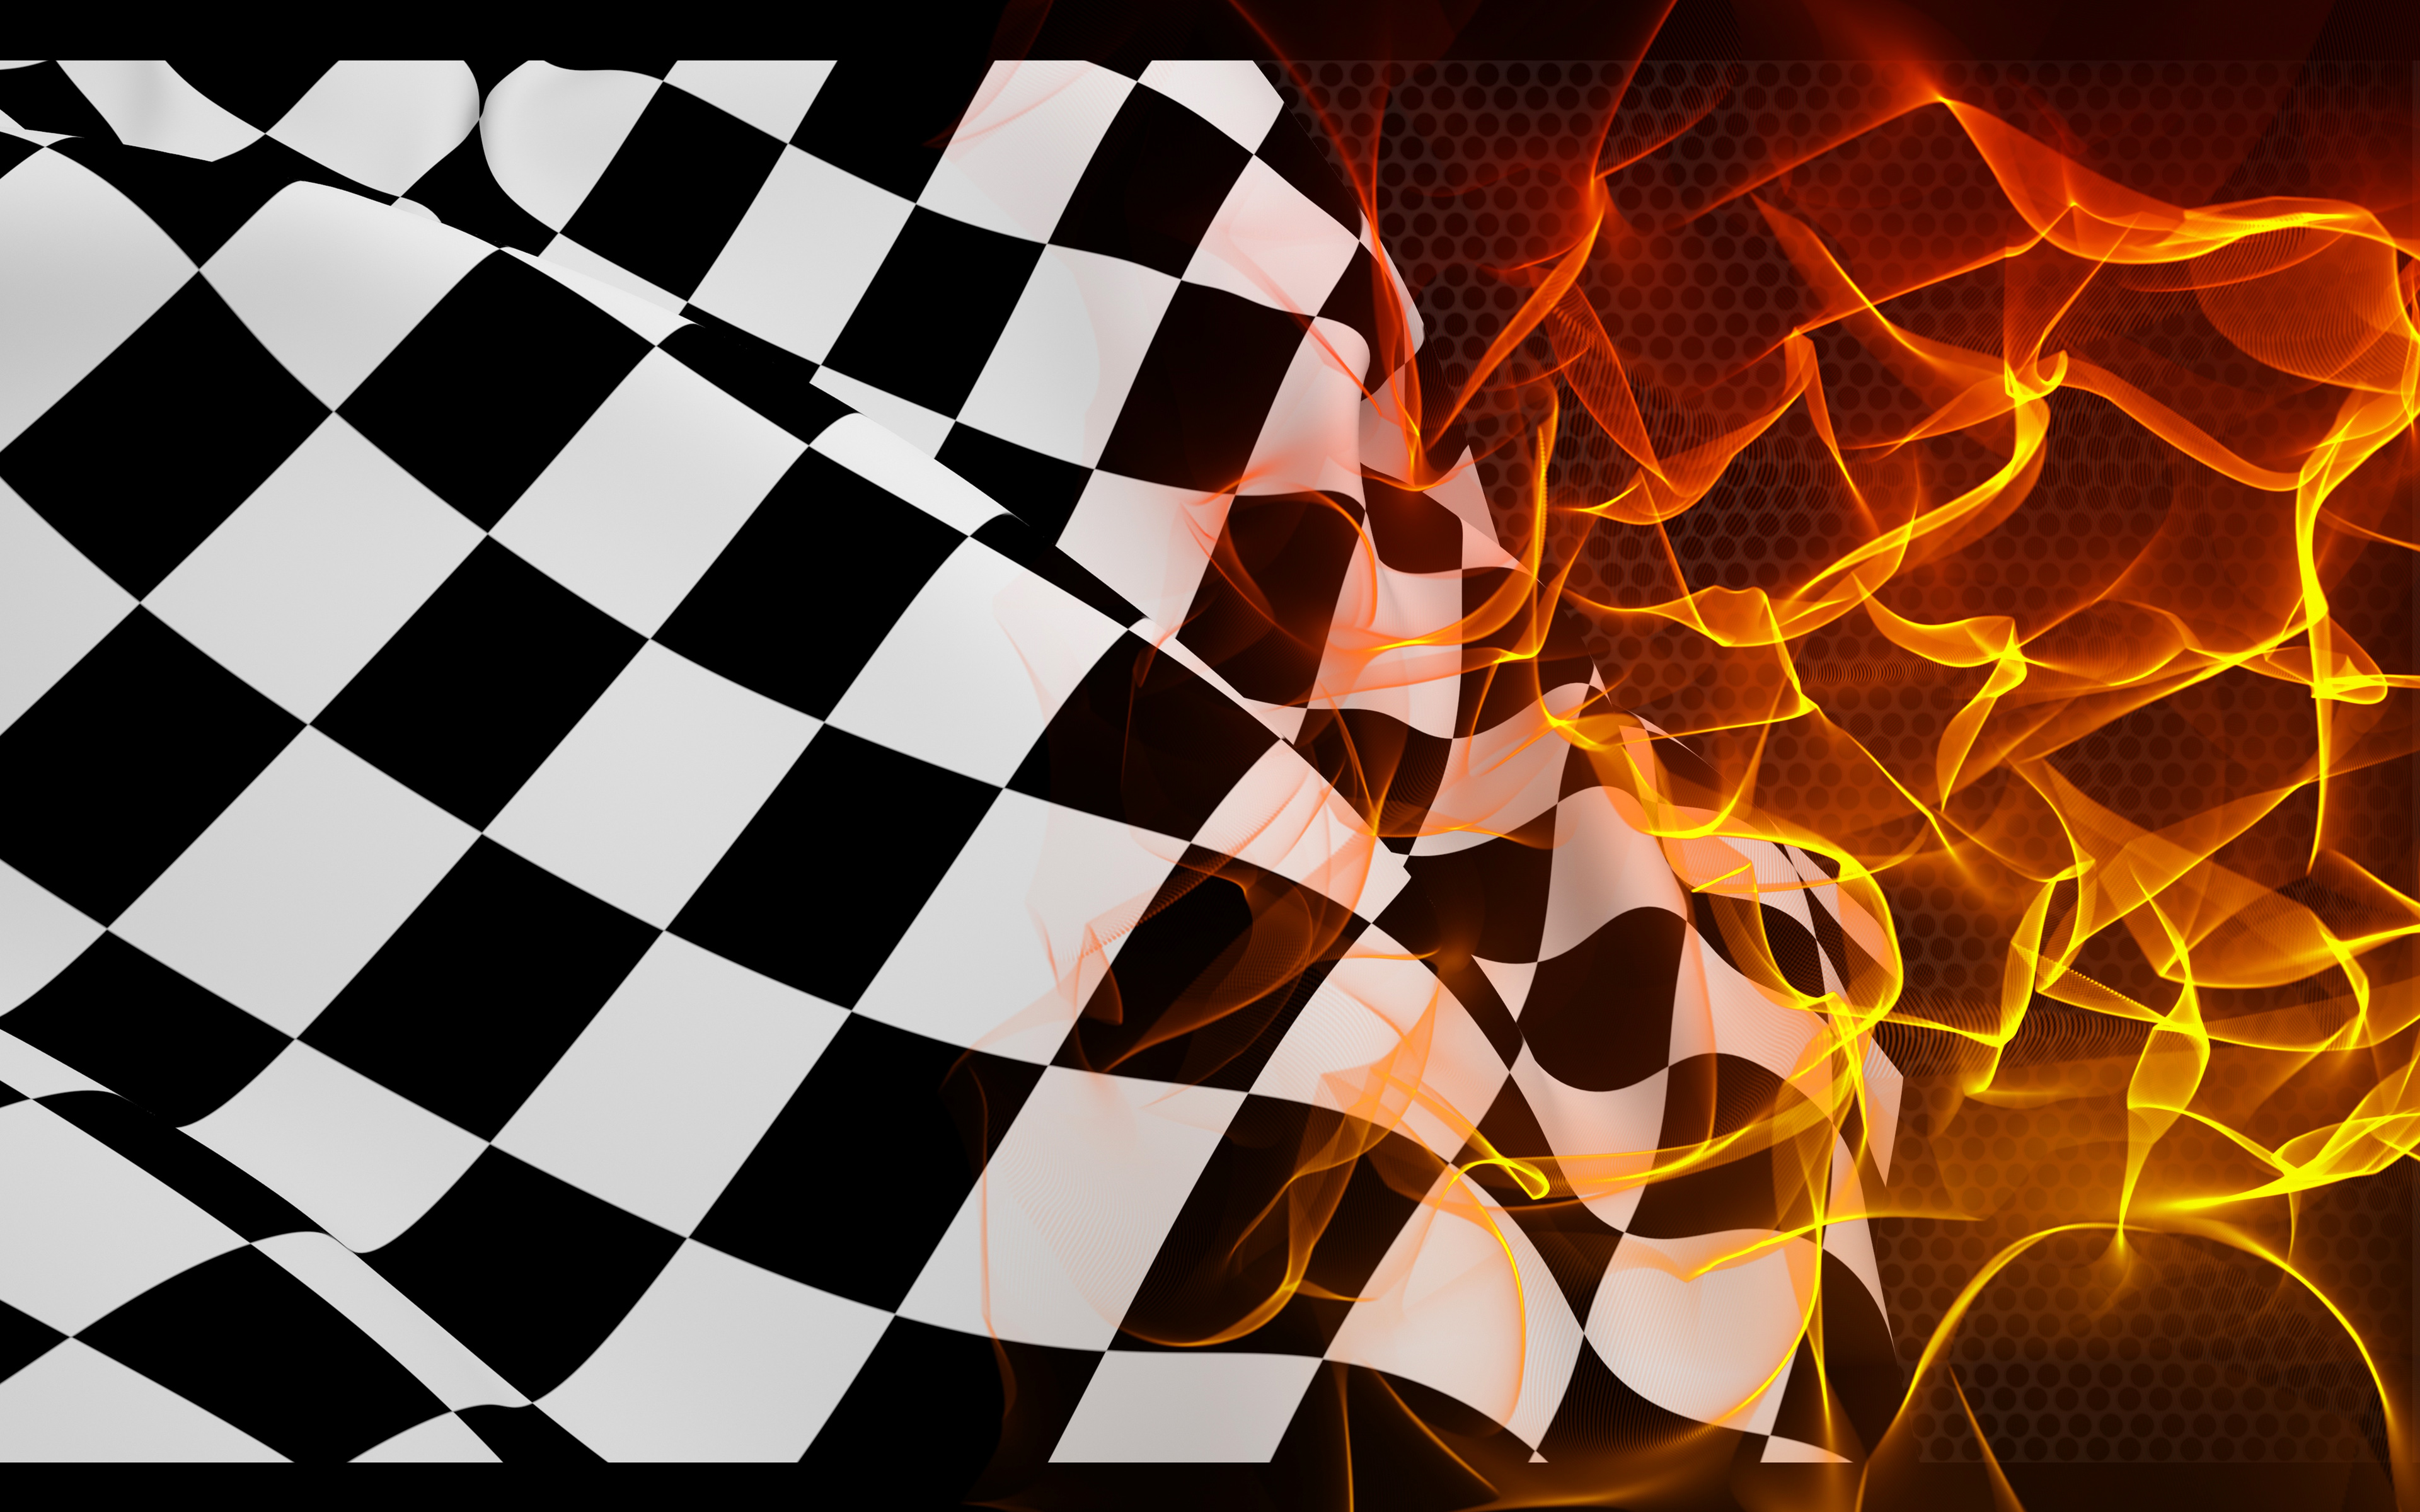 finish checkered flag fire flame powerpoint background #4861